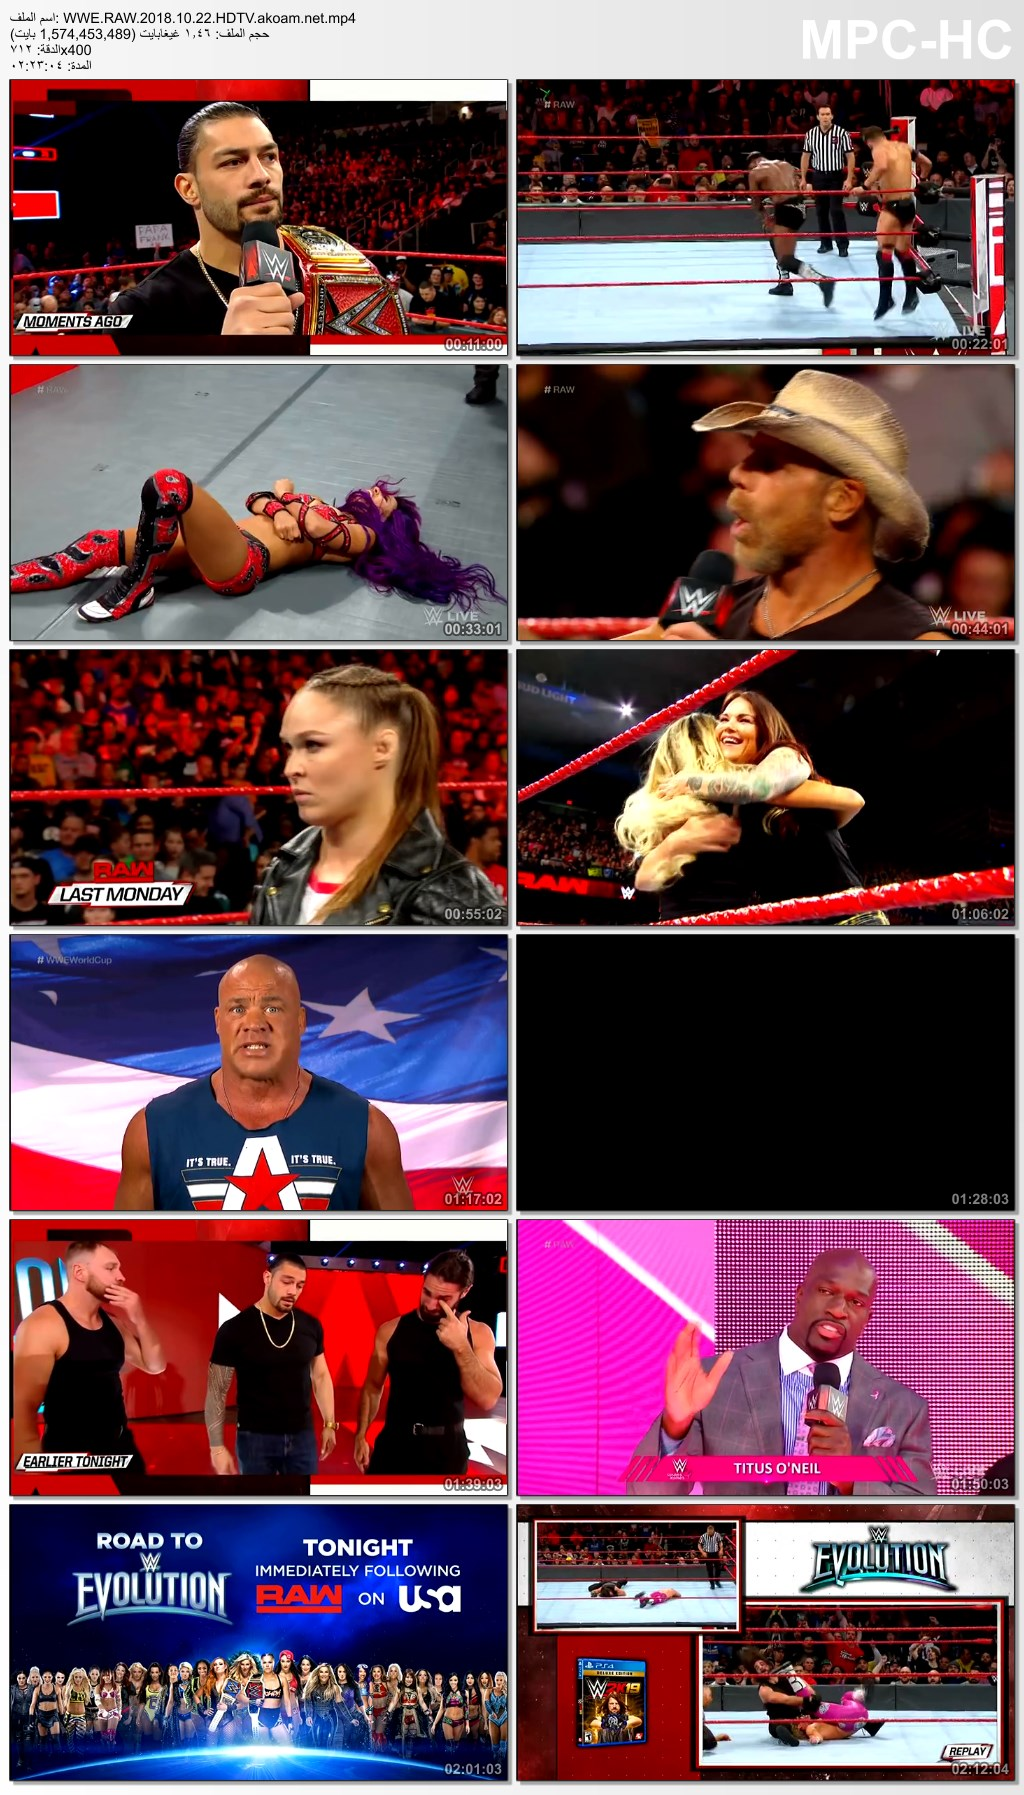 WWE,Raw,Monday Night Raw,WWE Monday Night Raw